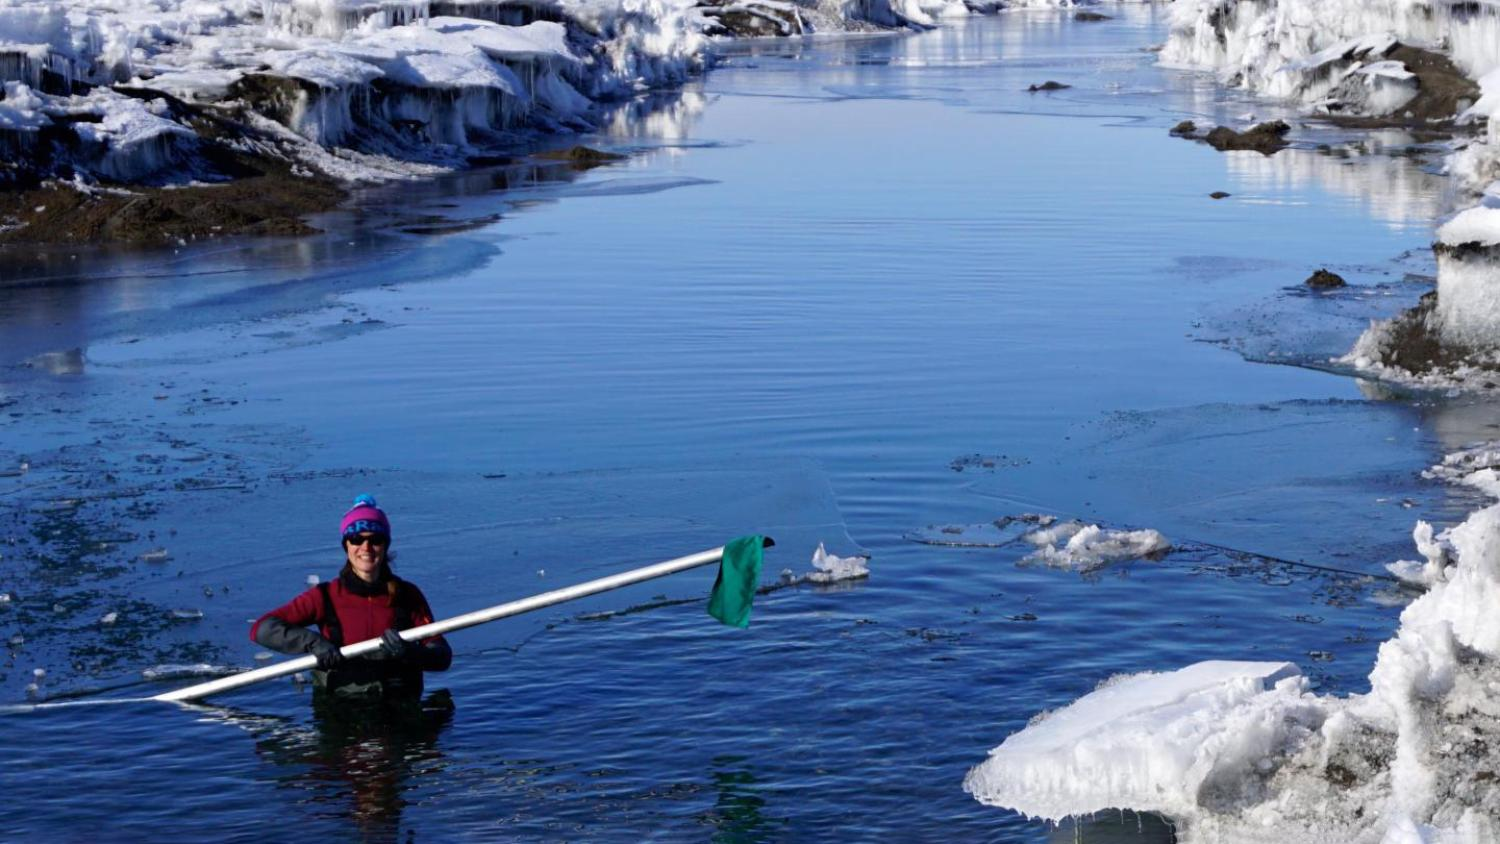 Alison Banwell wades through a meltwater pond in Antarctica